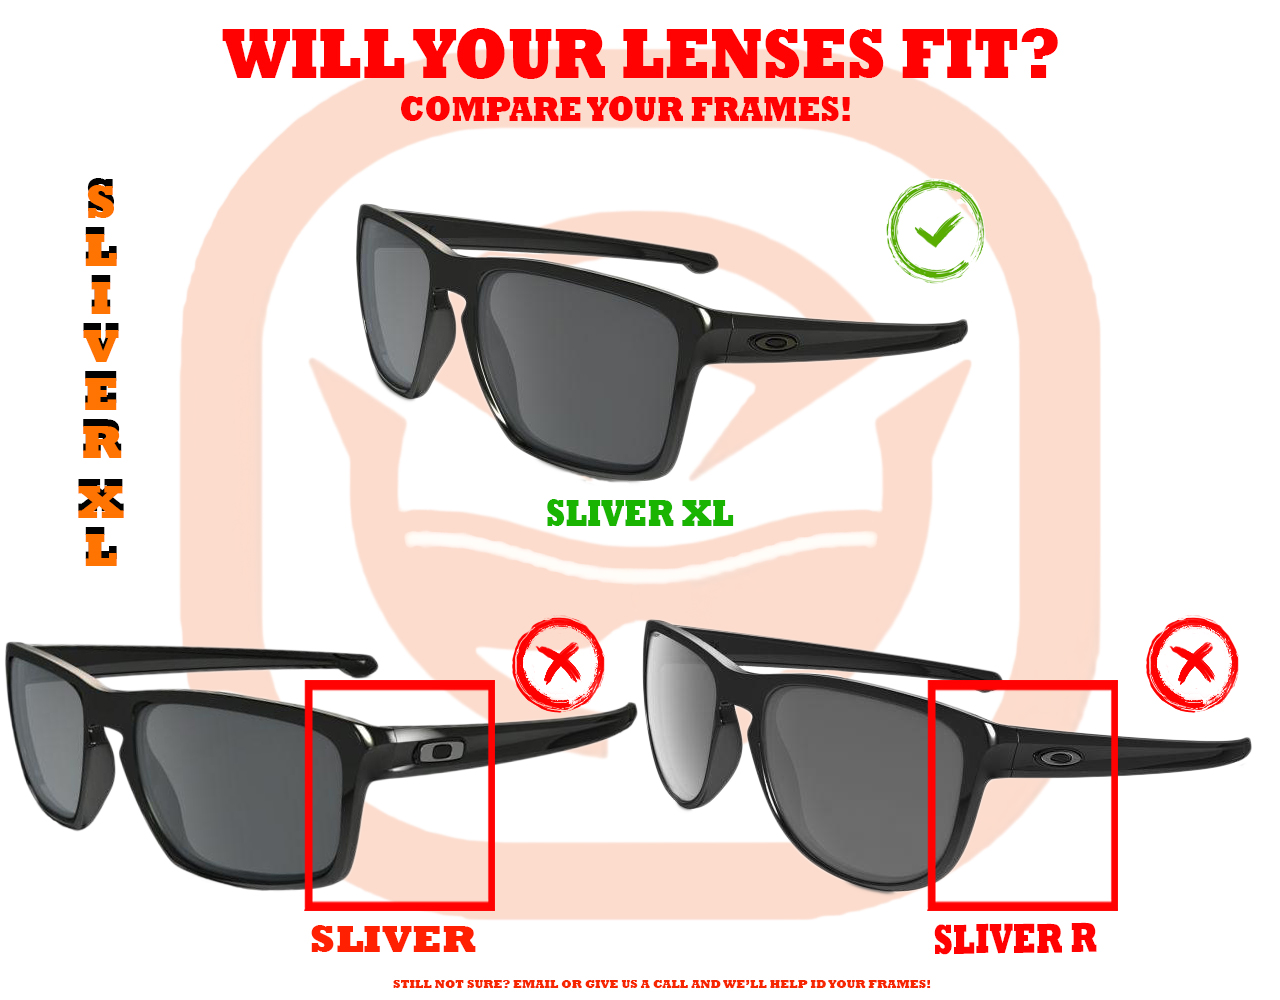 f40ab6a638 Sliver XL Replacement Lenses by SEEK OPTICS to fit OAKLEY Sunglasses ...